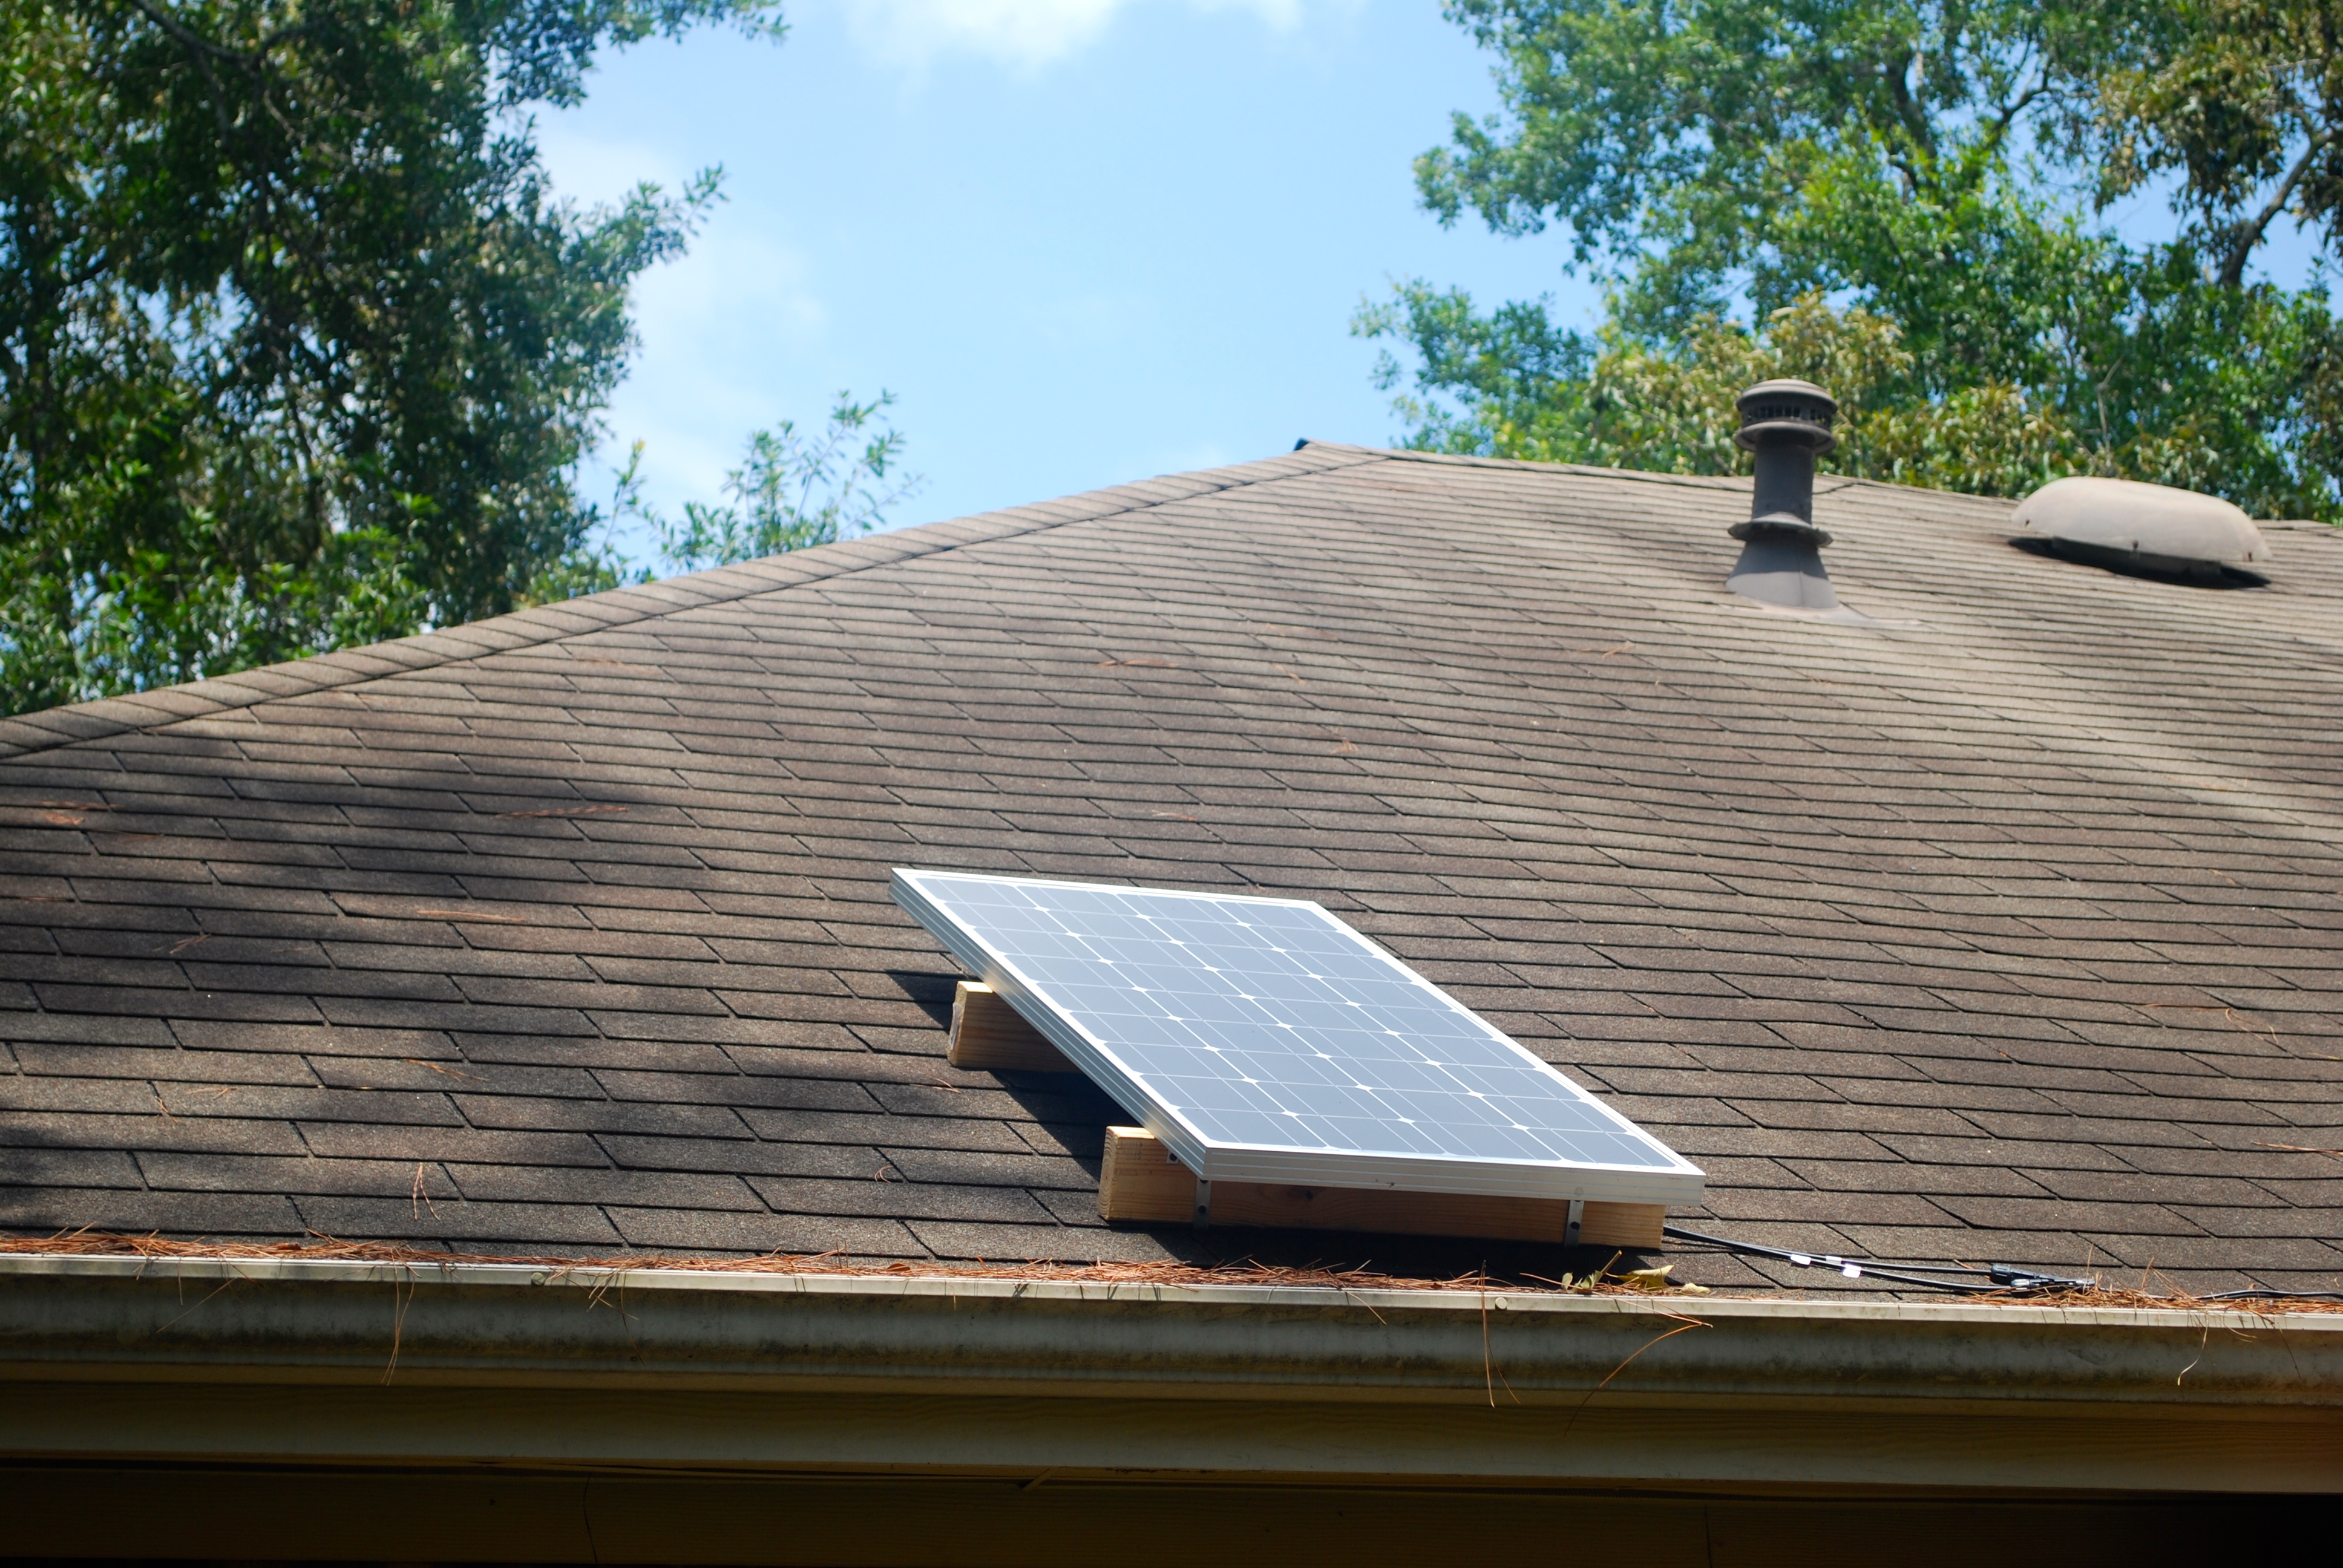 Installing Solar Water Heater At Home Ideas By Mr Right Tips When Adding Circuit Breaker For Diy Your Mounting Collectors On Roof